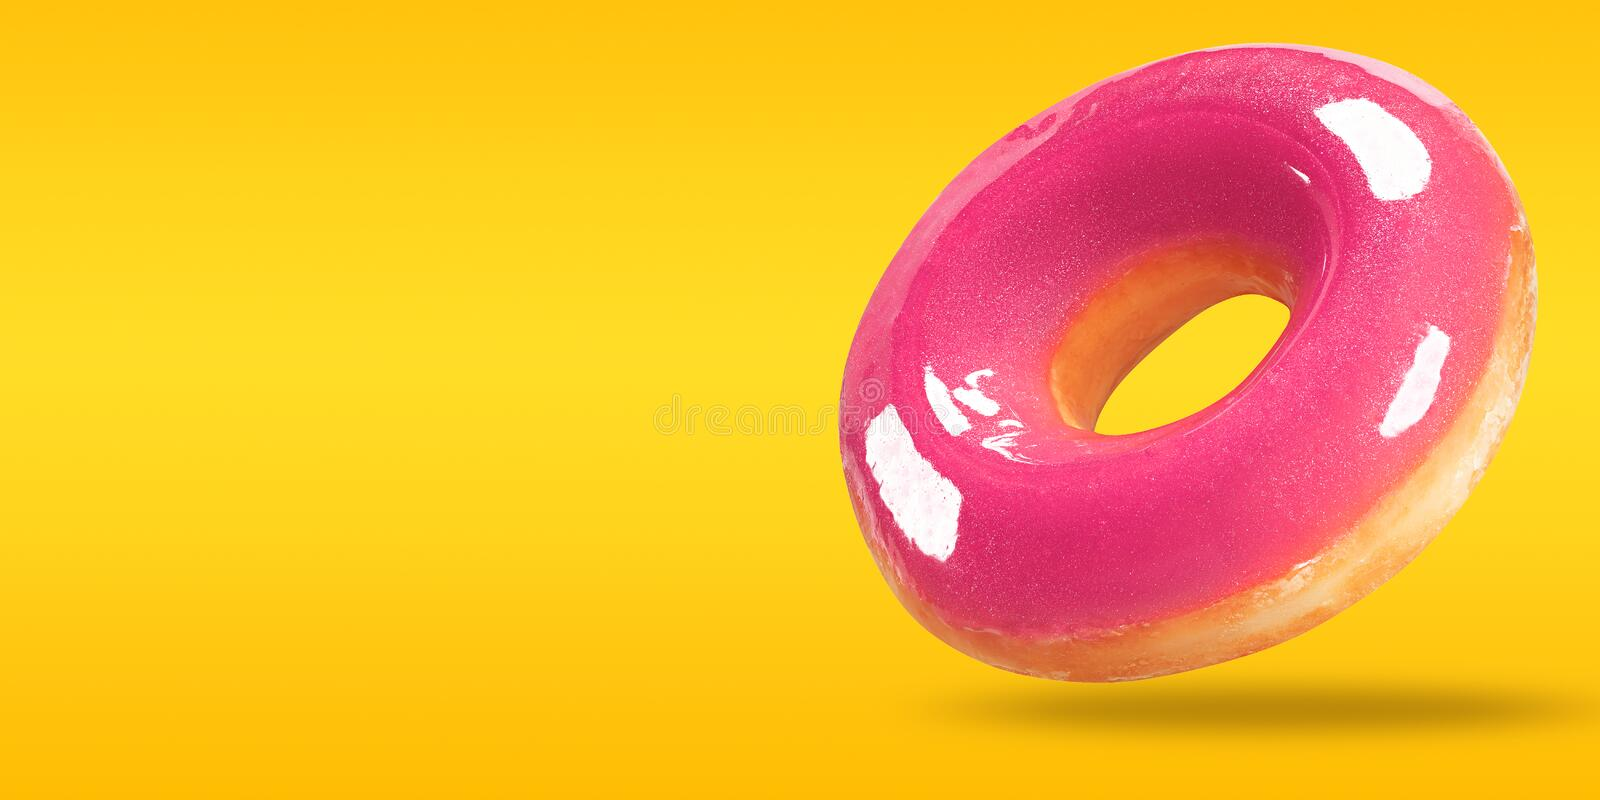 Closeup donut with copy space on yellow and orange background. Summer sweet food concept.  royalty free stock photo